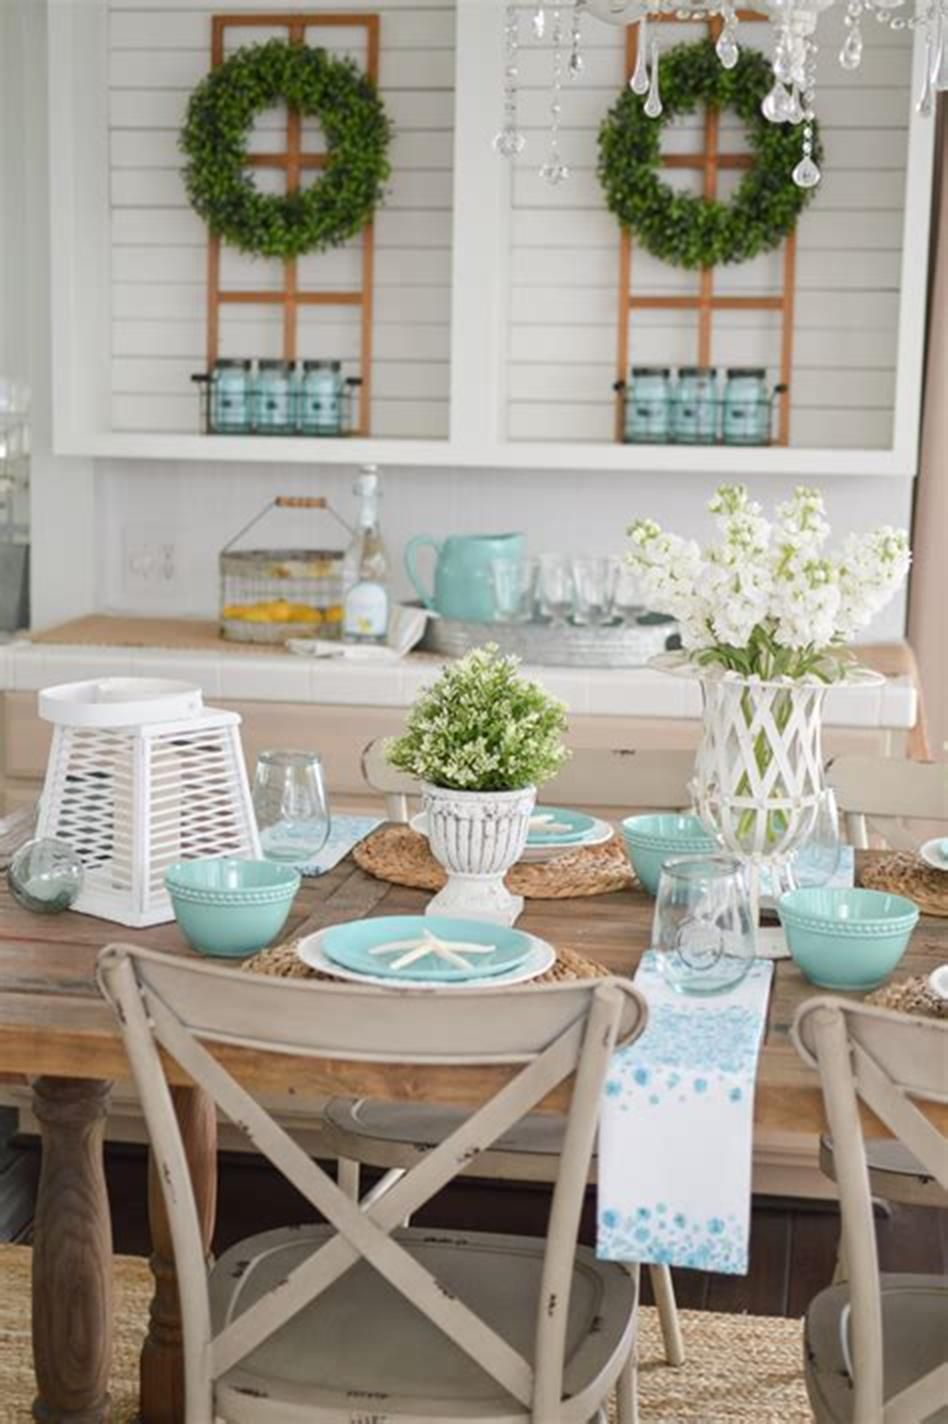 35 Beautiful Kitchen Tray Decorating Ideas for This Year